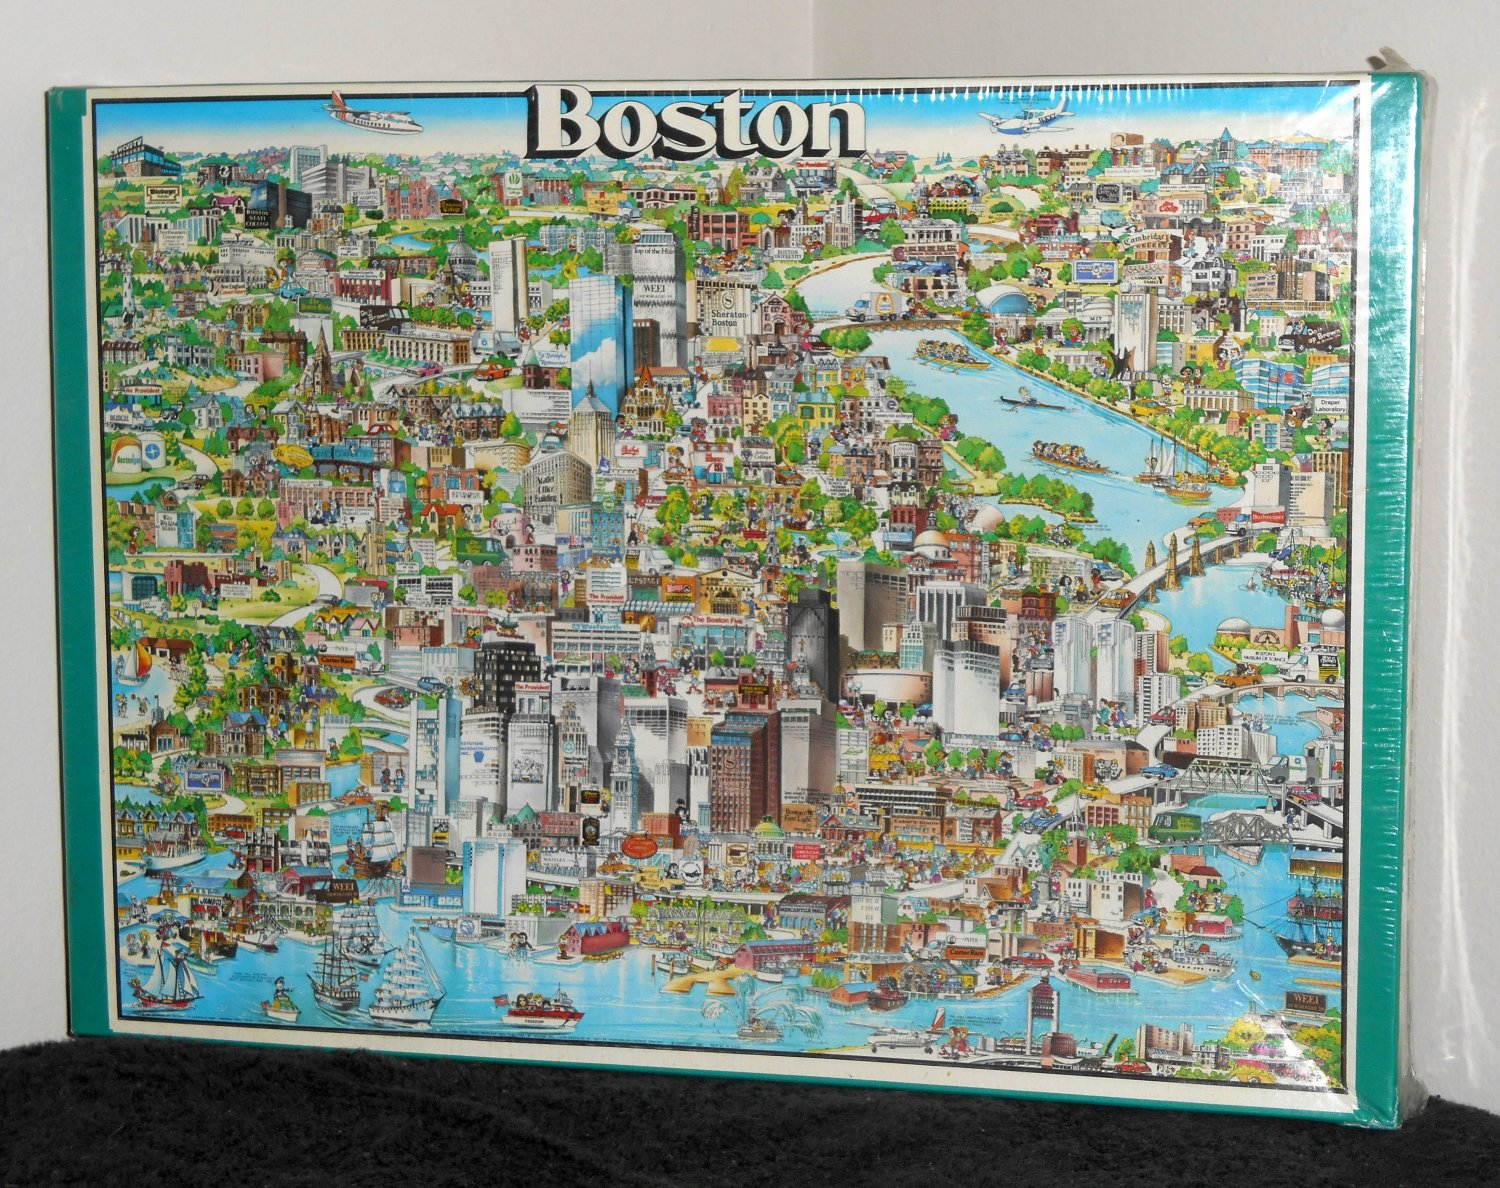 Boston Jigsaw Puzzles Character 504 Pieces Buffalo Games 1000 Historic Waterfront North End